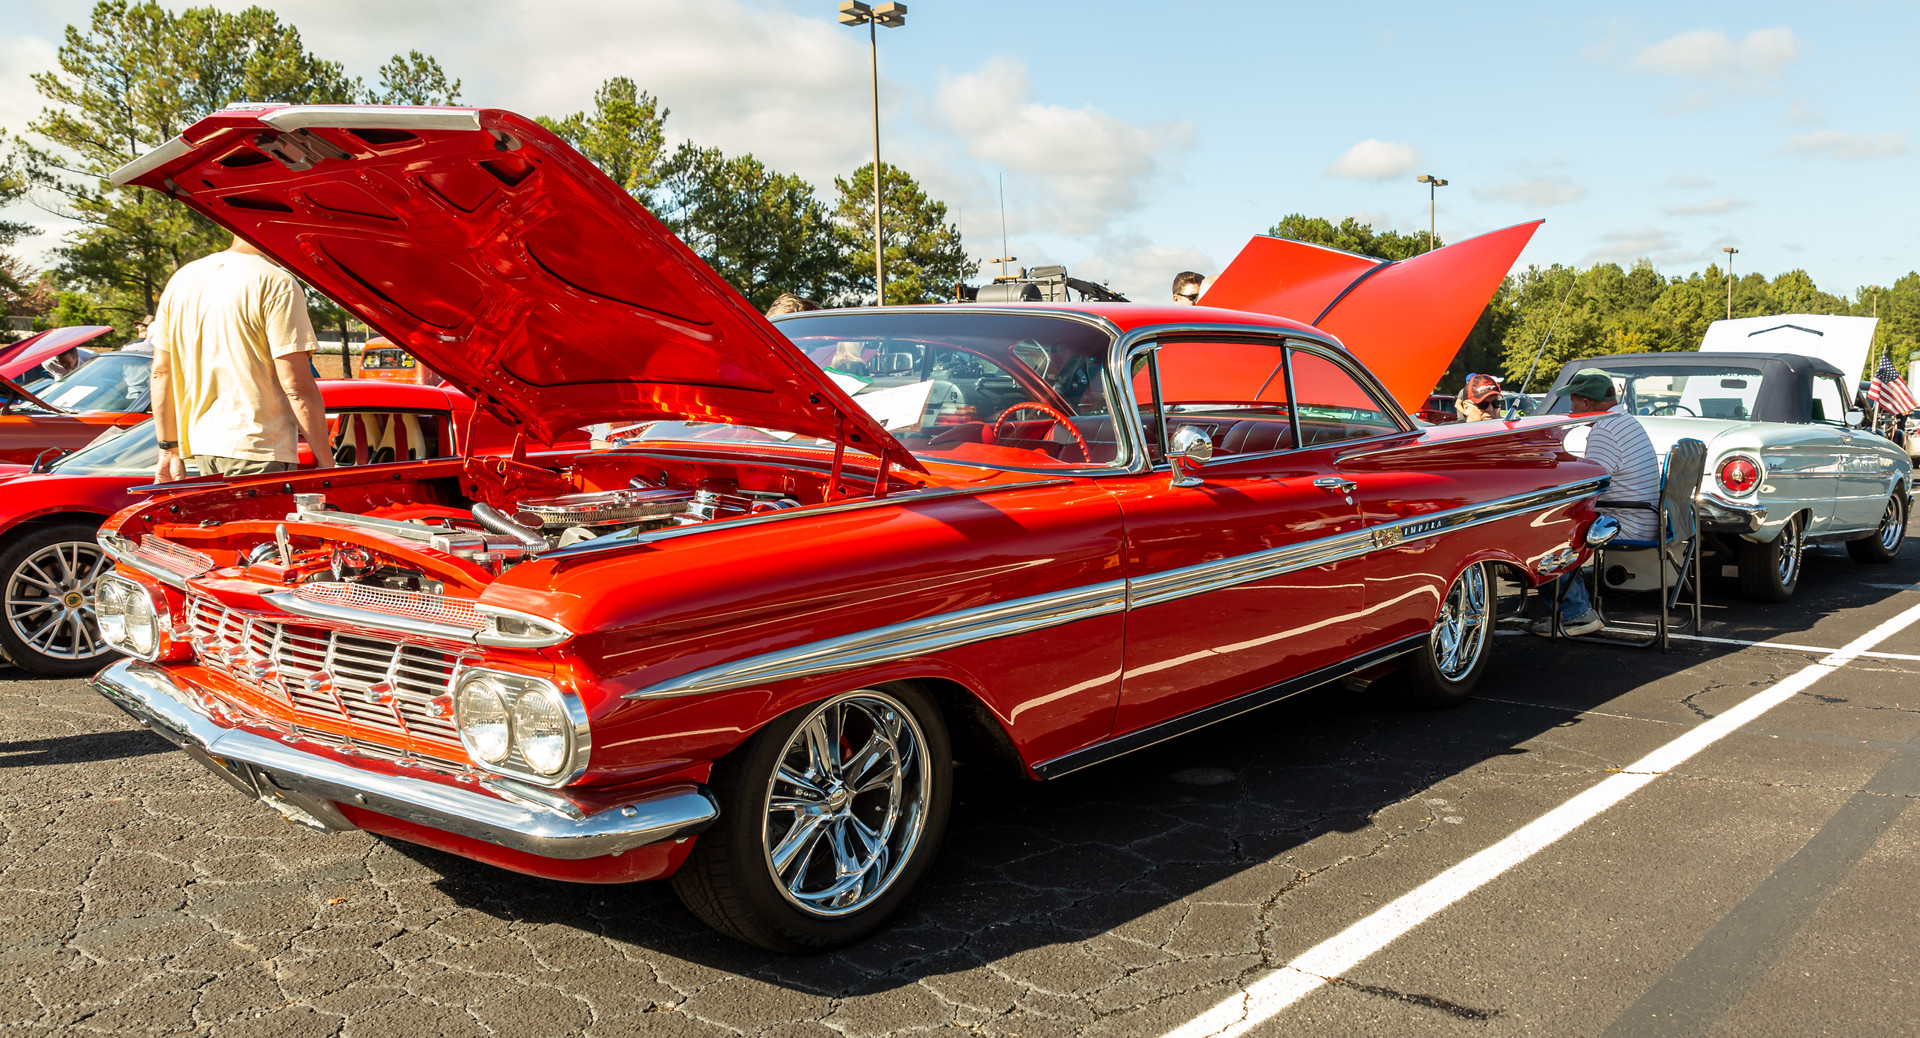 BH Art Fest Car Show 19 (32 of 109).jpg